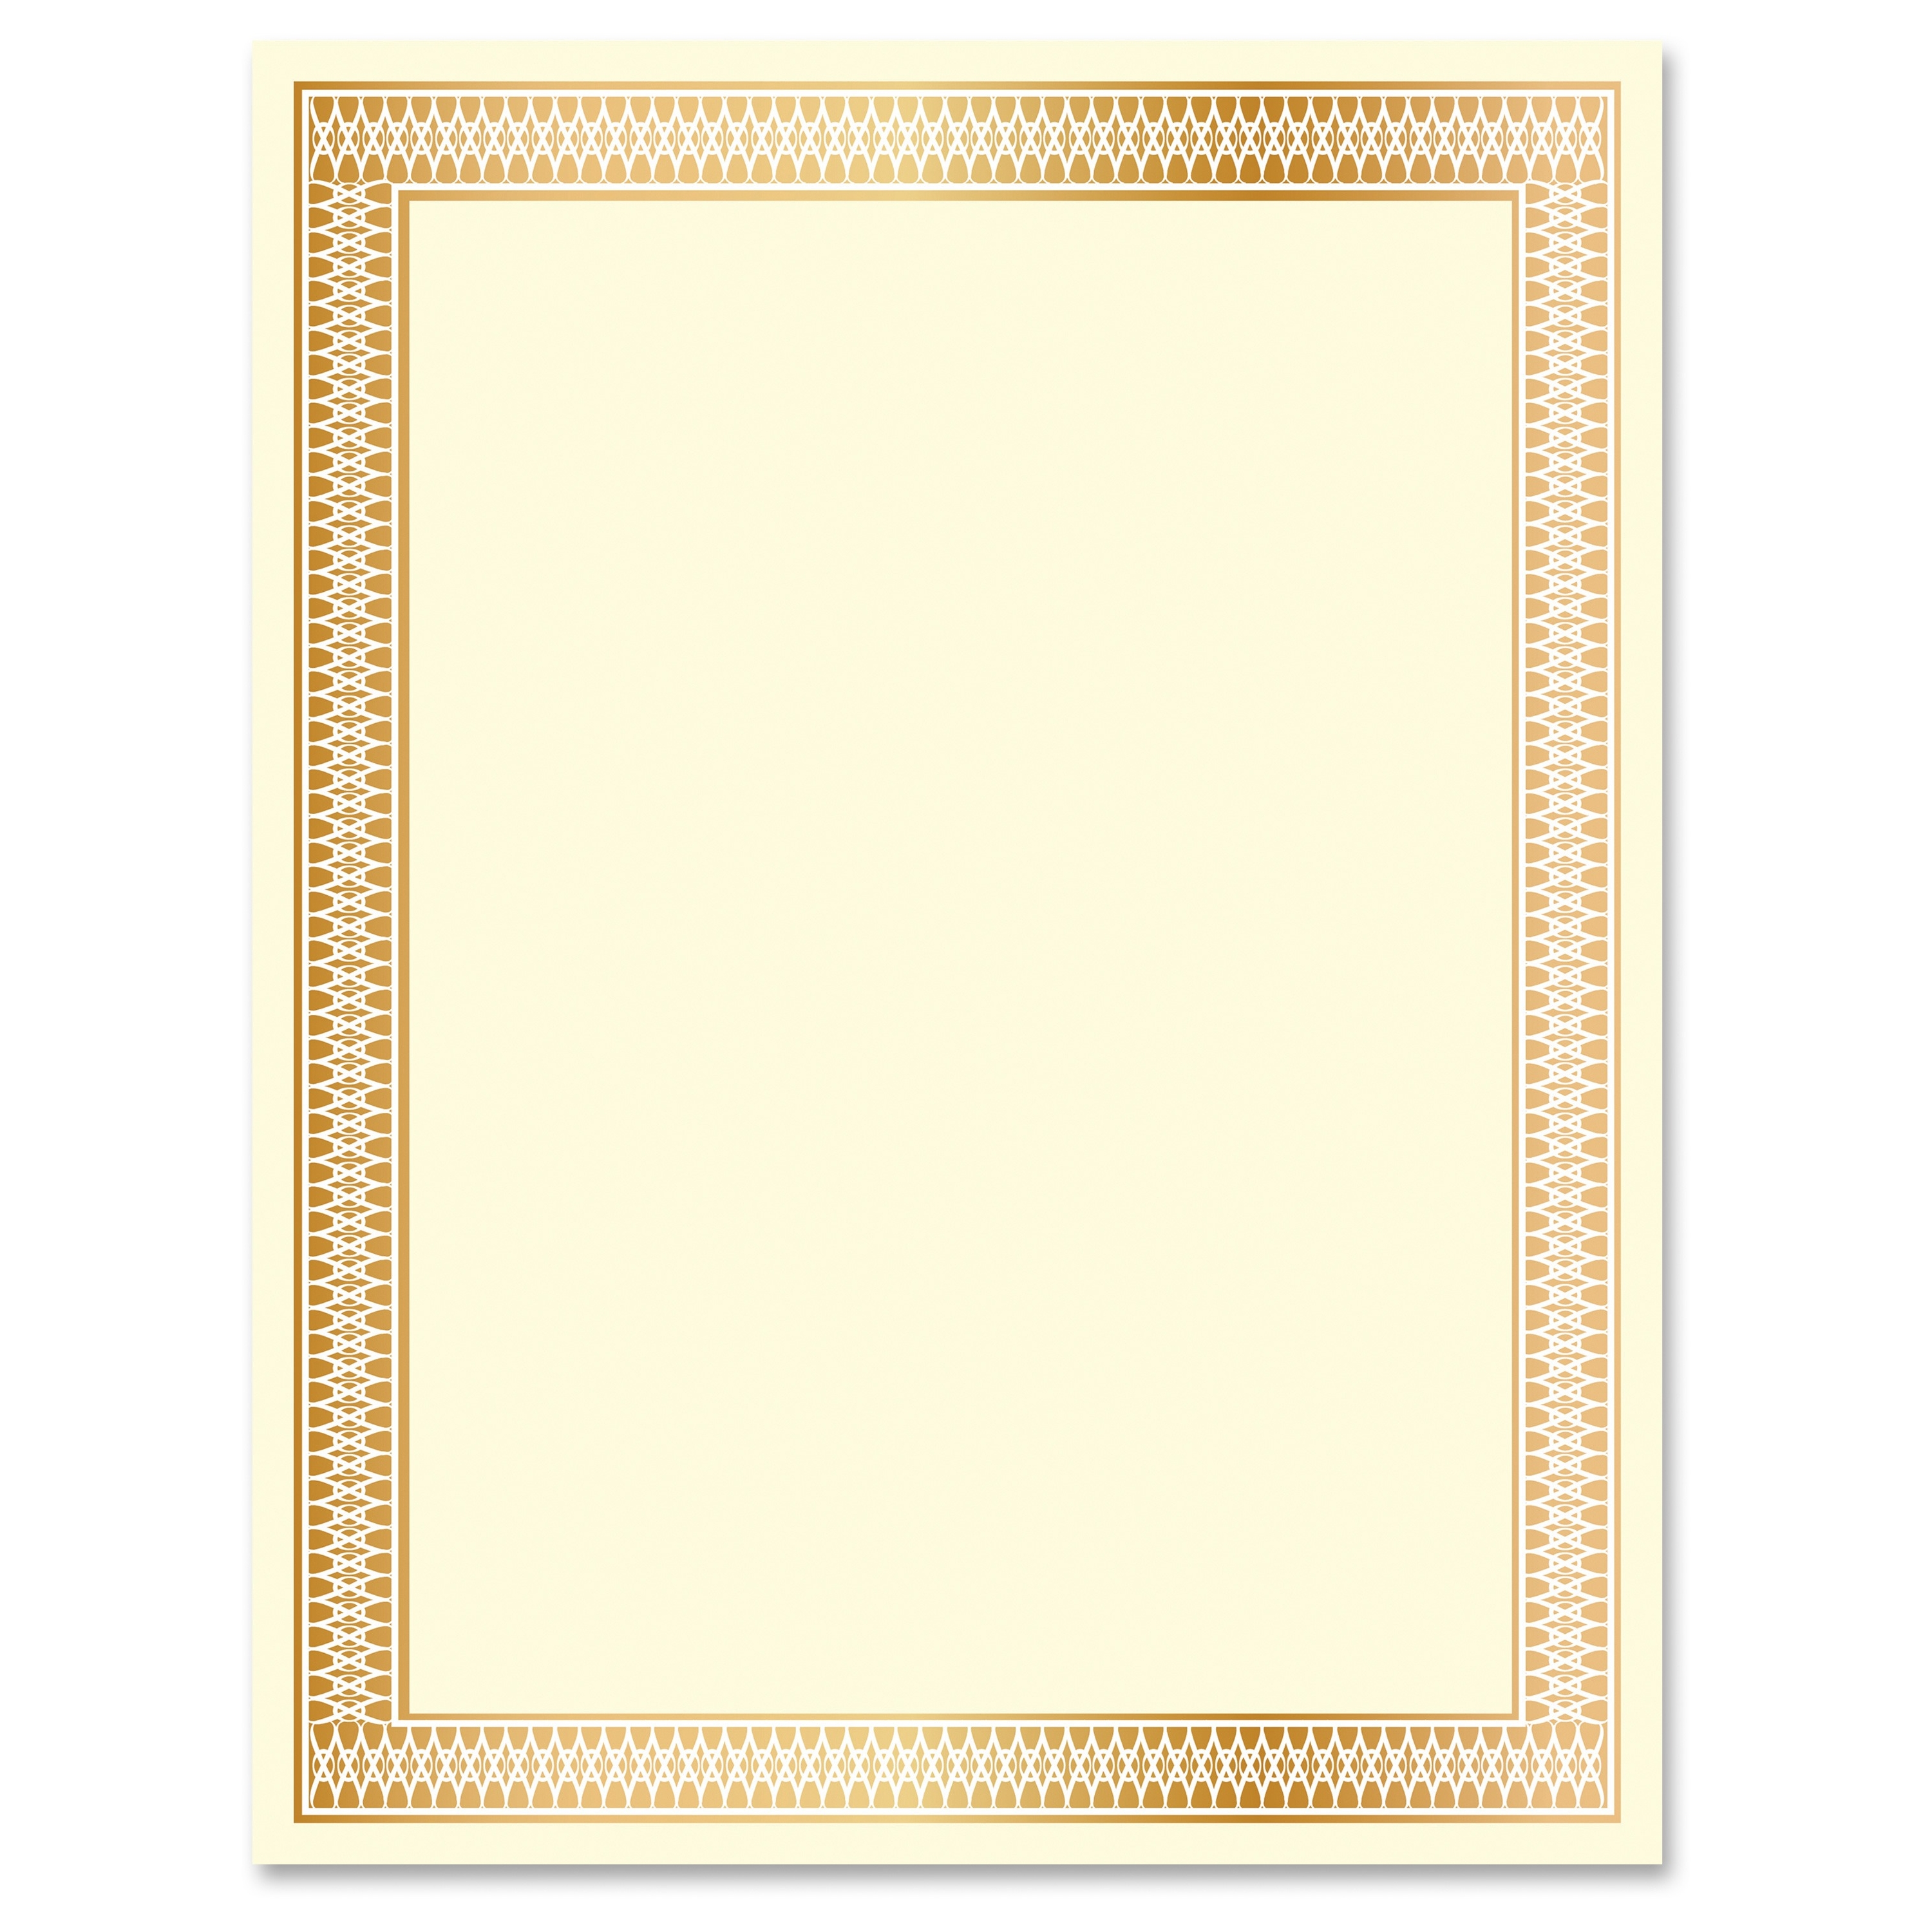 Geographics Traditional Award Certificates - Laser, Inkjet Compatible - Gold (geo-47833)